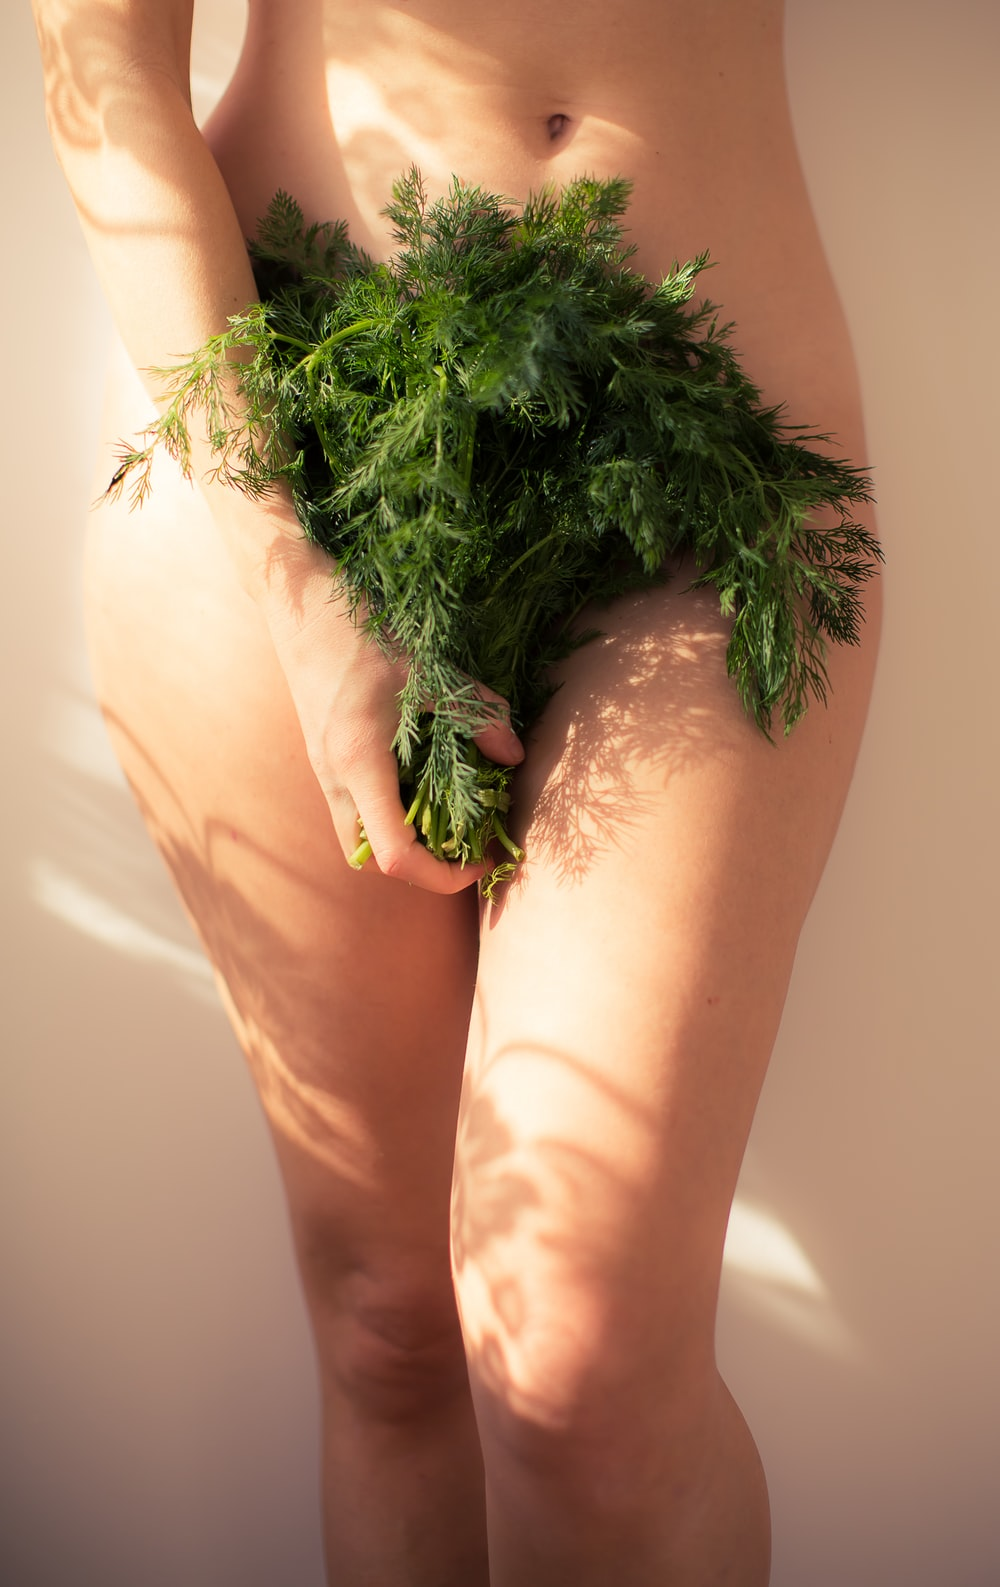 A woman covering her genitals with green leafy plants.